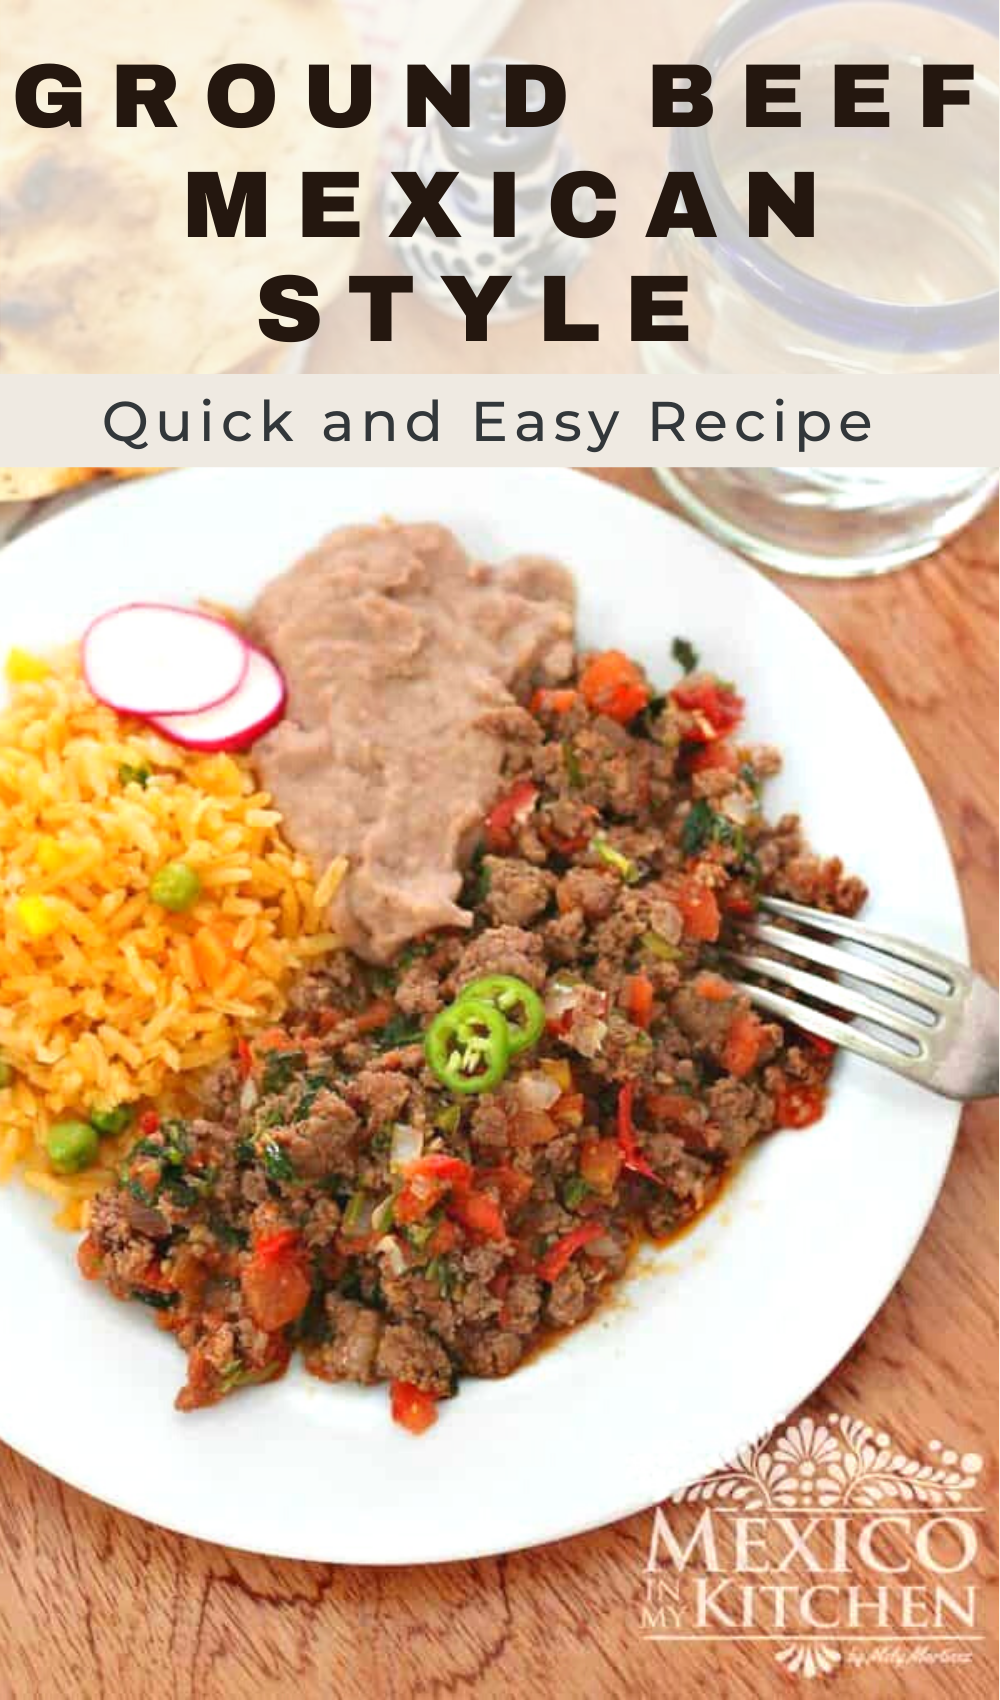 How To Make Ground Beef Recipe Authentic Mexican Recipes Recipe In 2021 Mexican Food Recipes Authentic Ground Beef Recipes Mexican Food Recipes